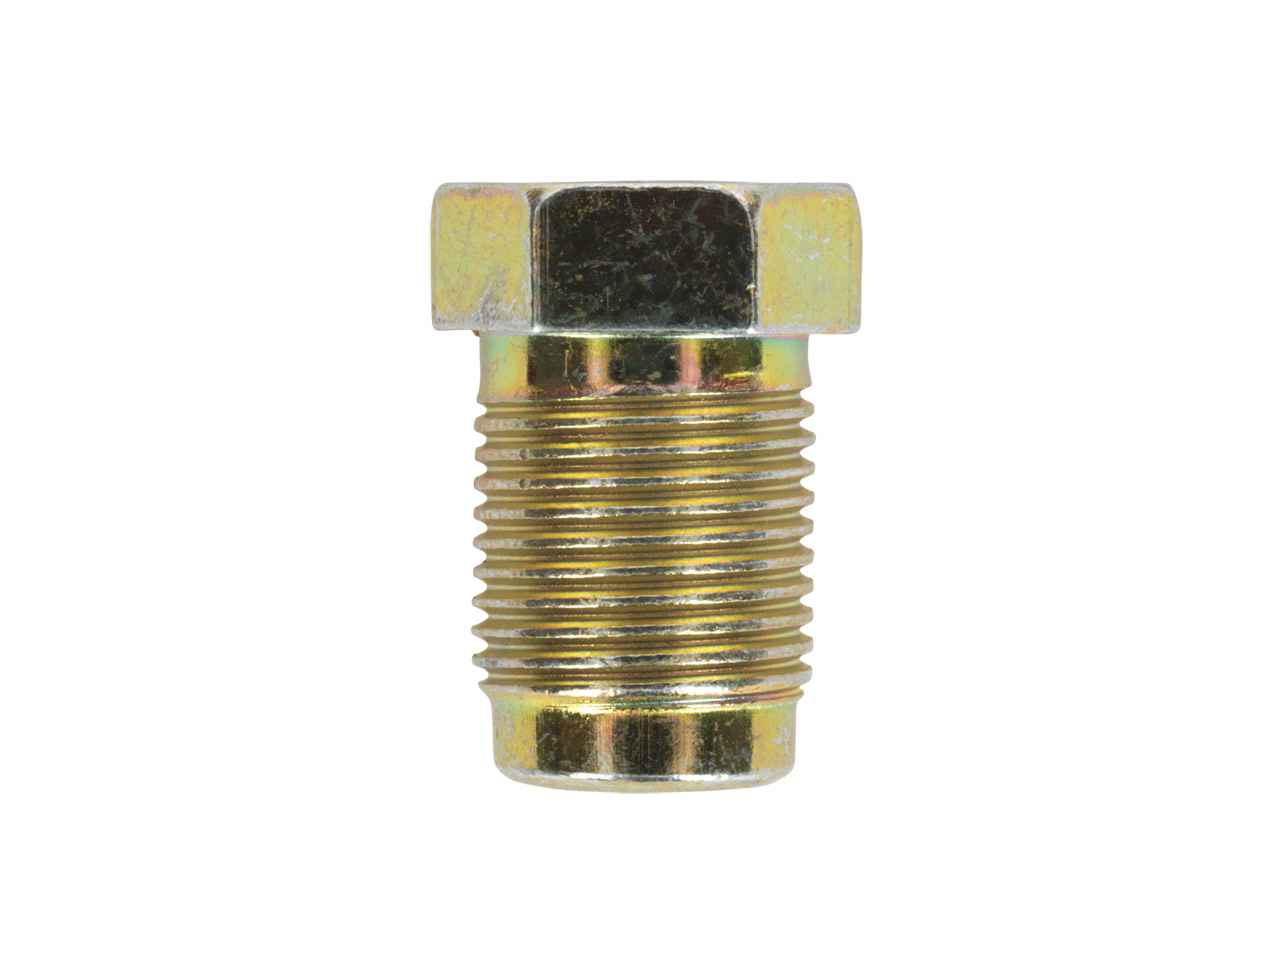 Pack 10 10mm X 1mm Male brake pipe nuts